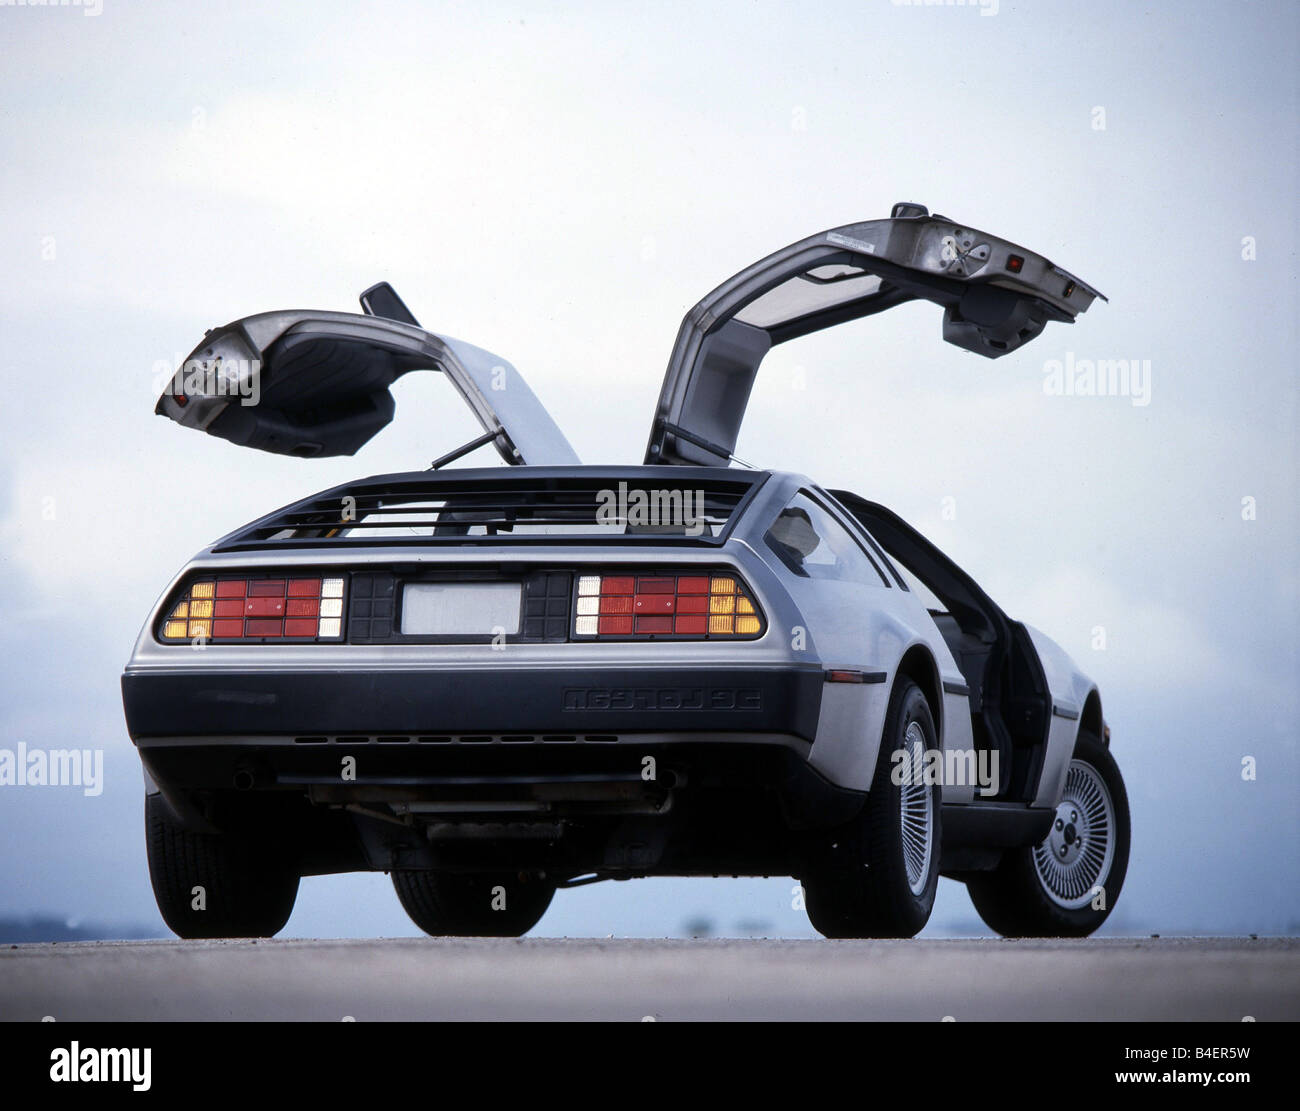 delorean dmc 12 auto oldtimer 1980er jahre 80er jahre. Black Bedroom Furniture Sets. Home Design Ideas